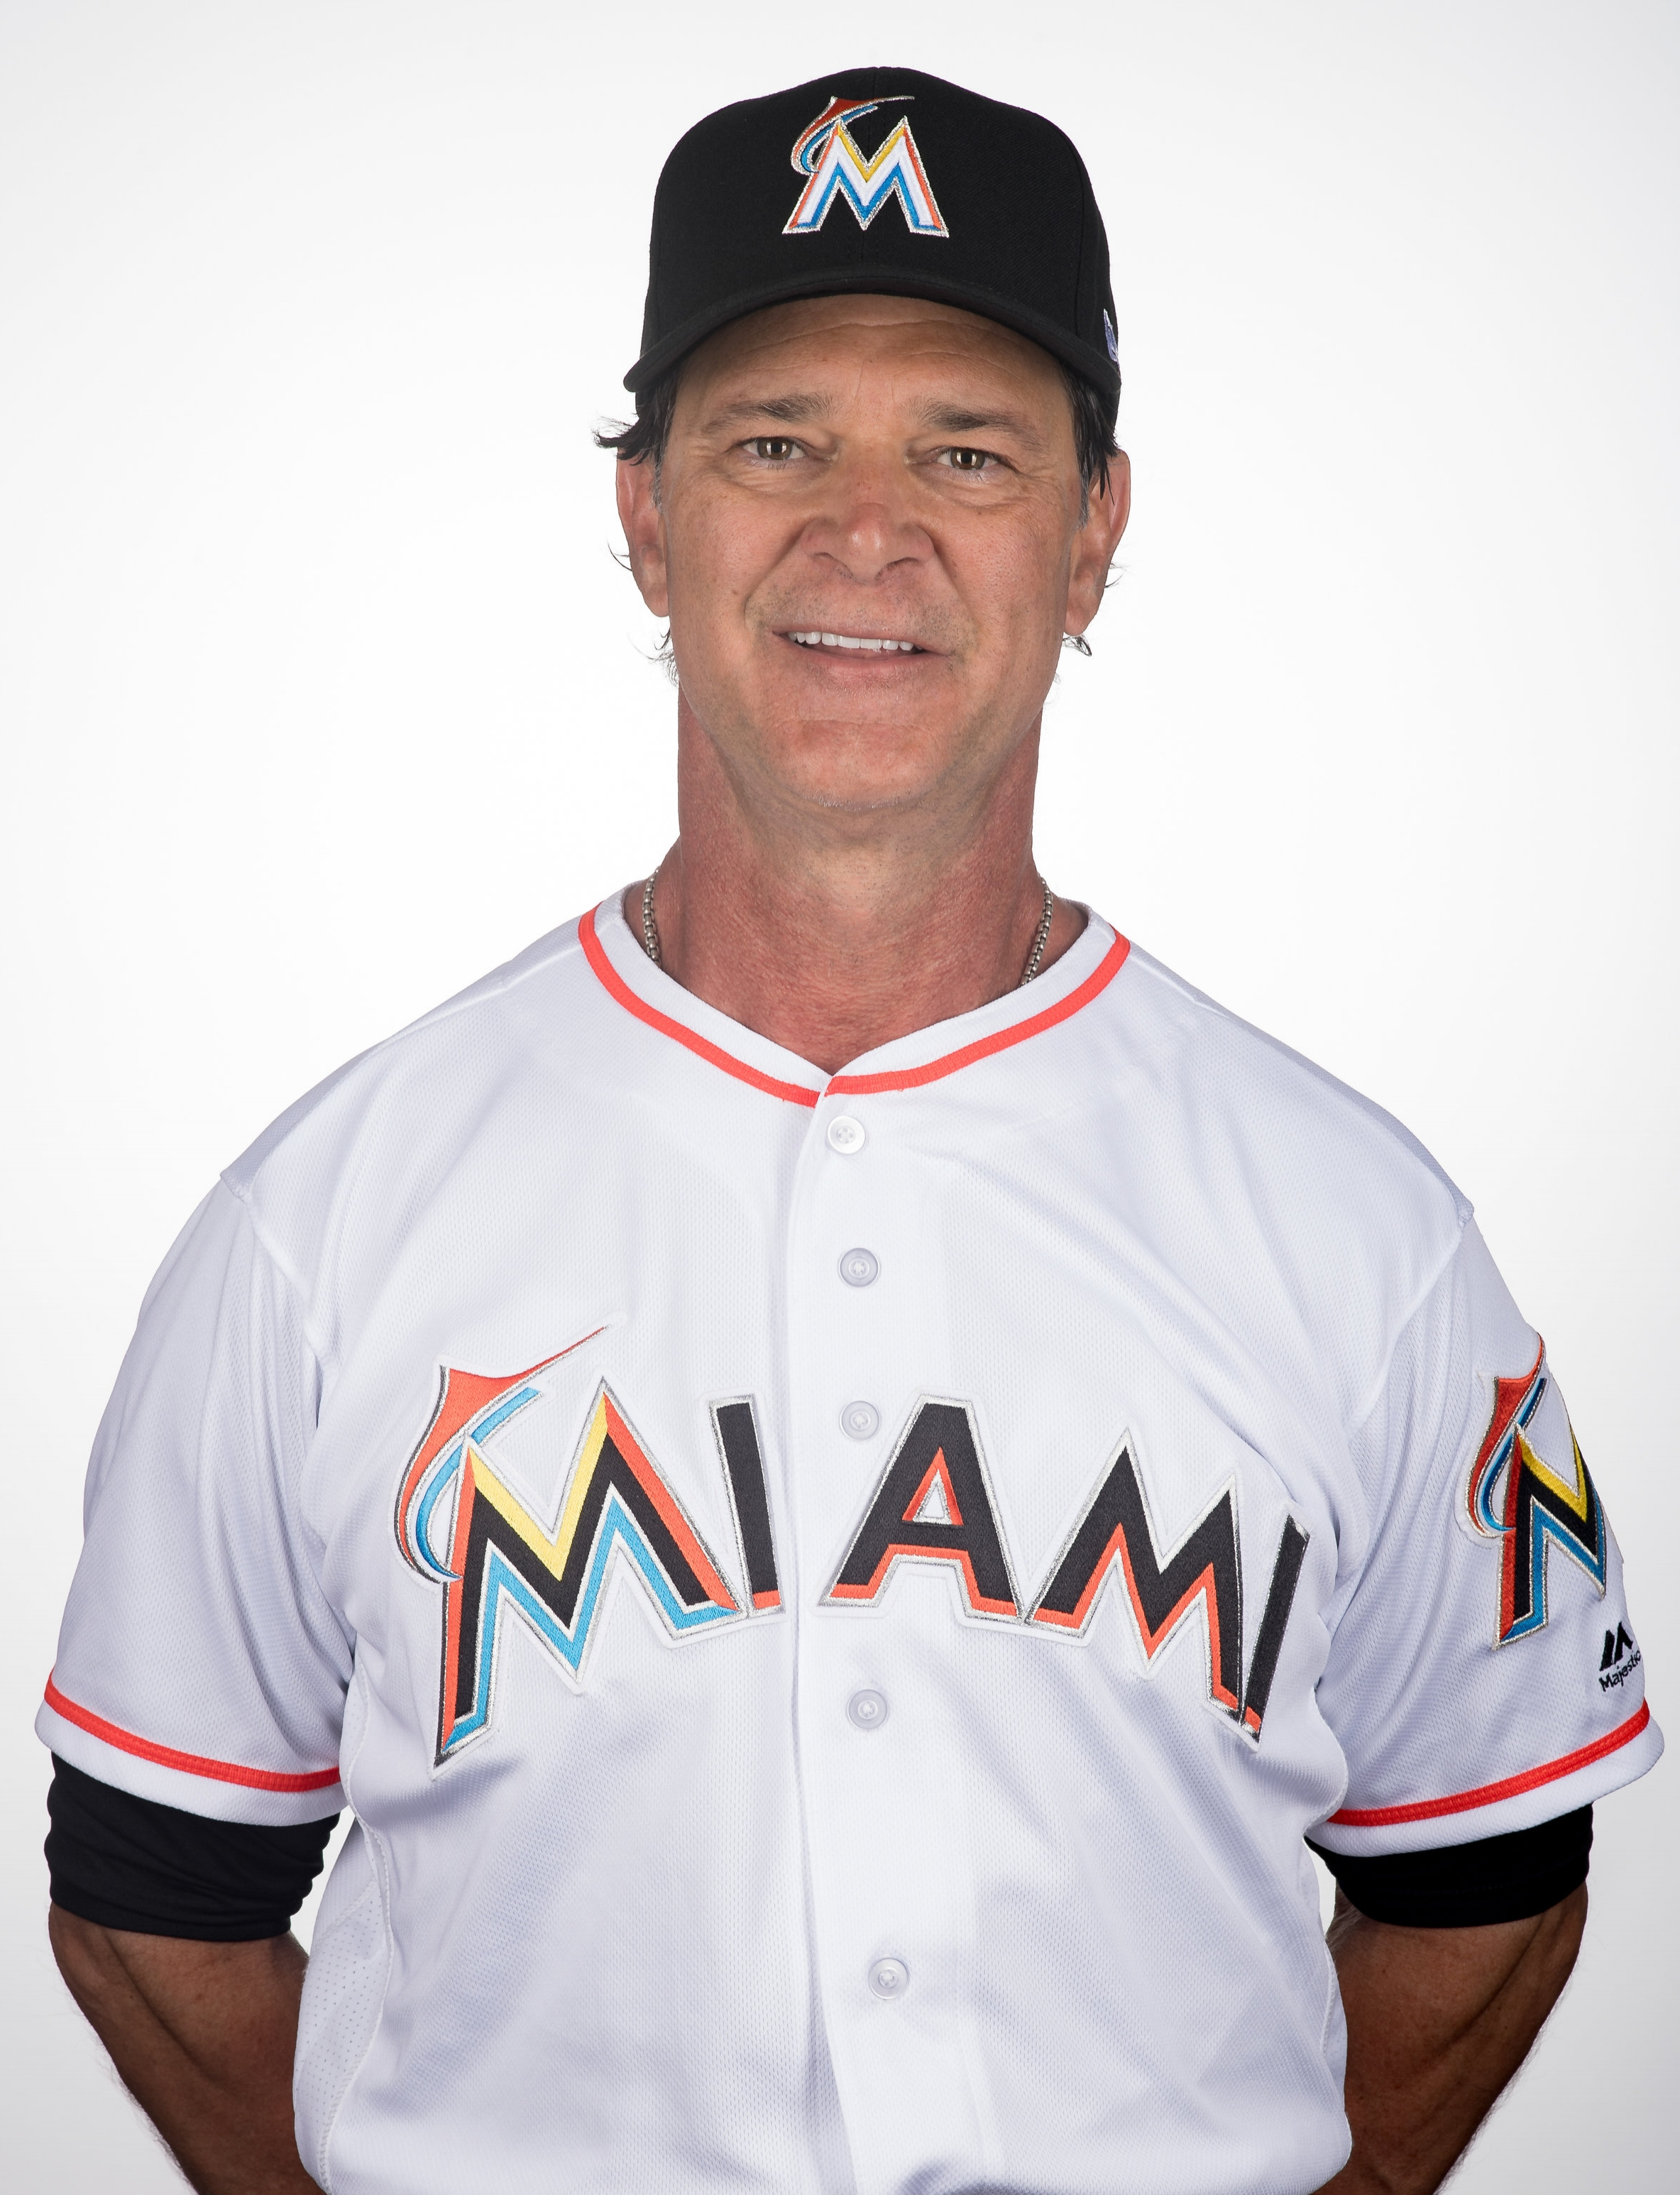 Photo courtesy of the Miami Marlins